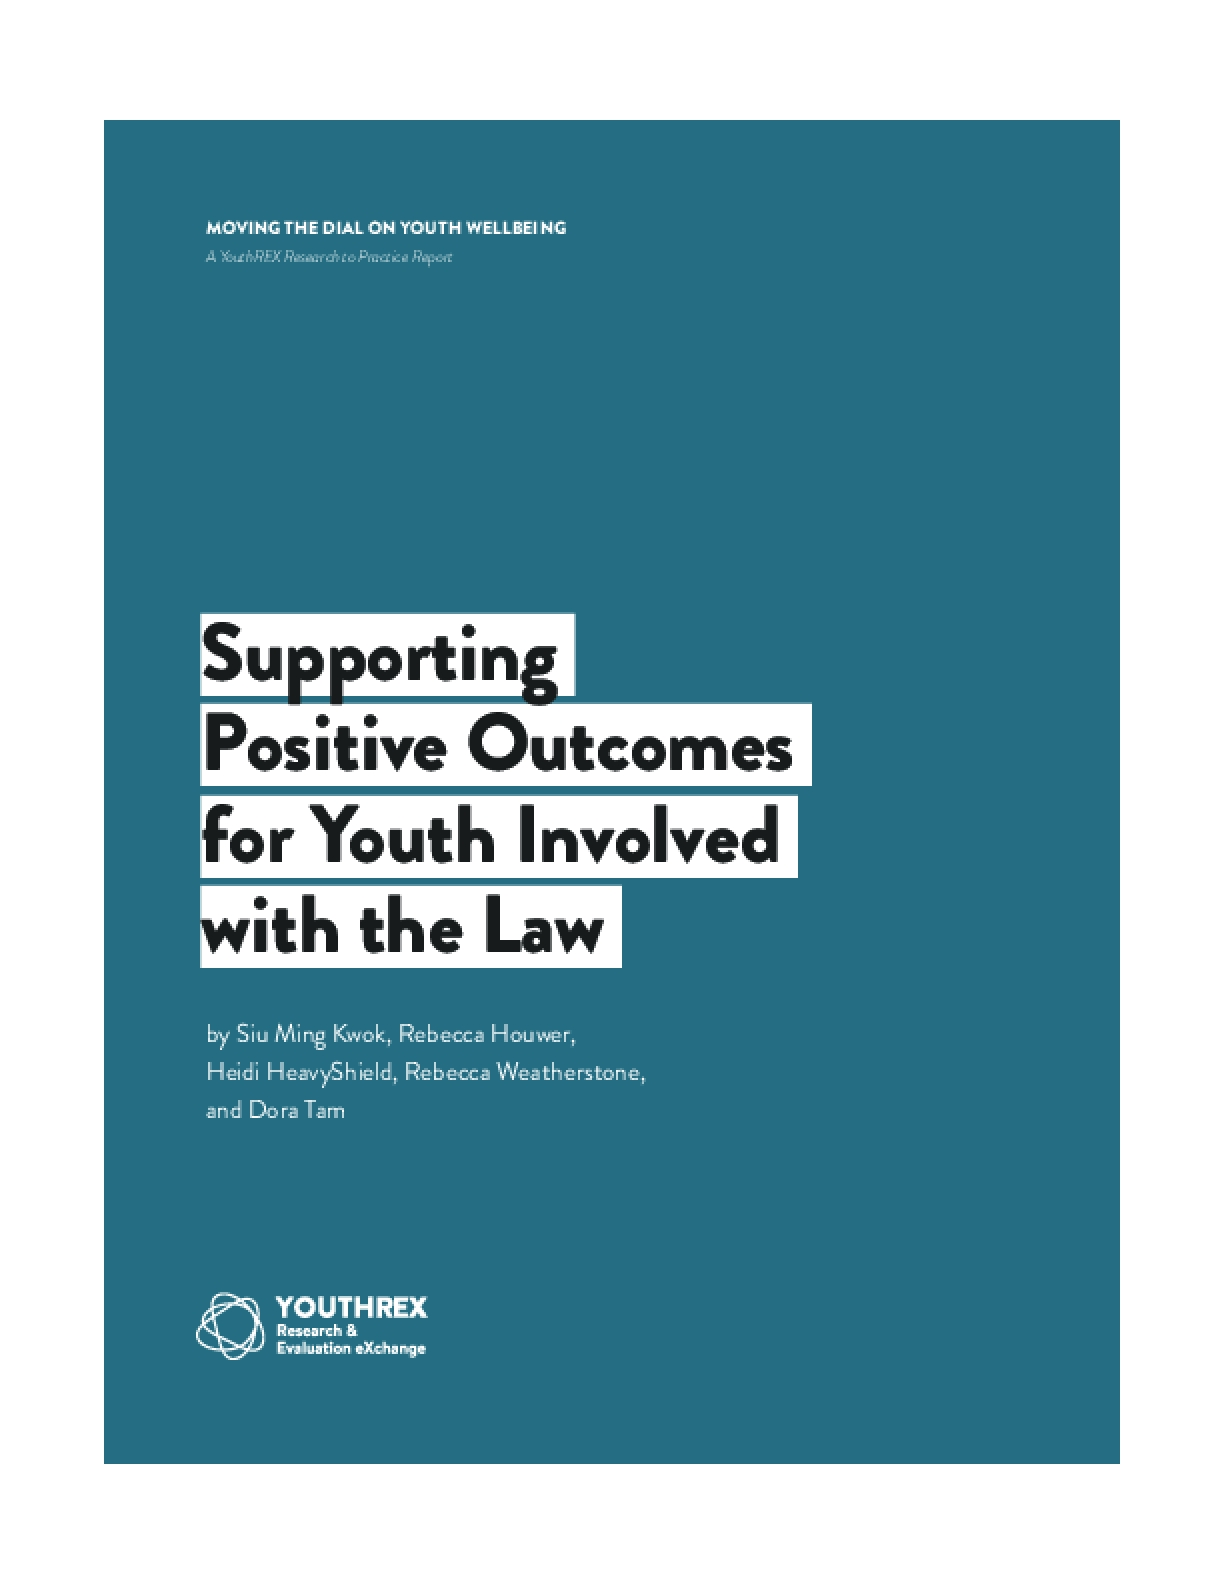 Supporting Positive Outcomes For Youth Involved With The Law